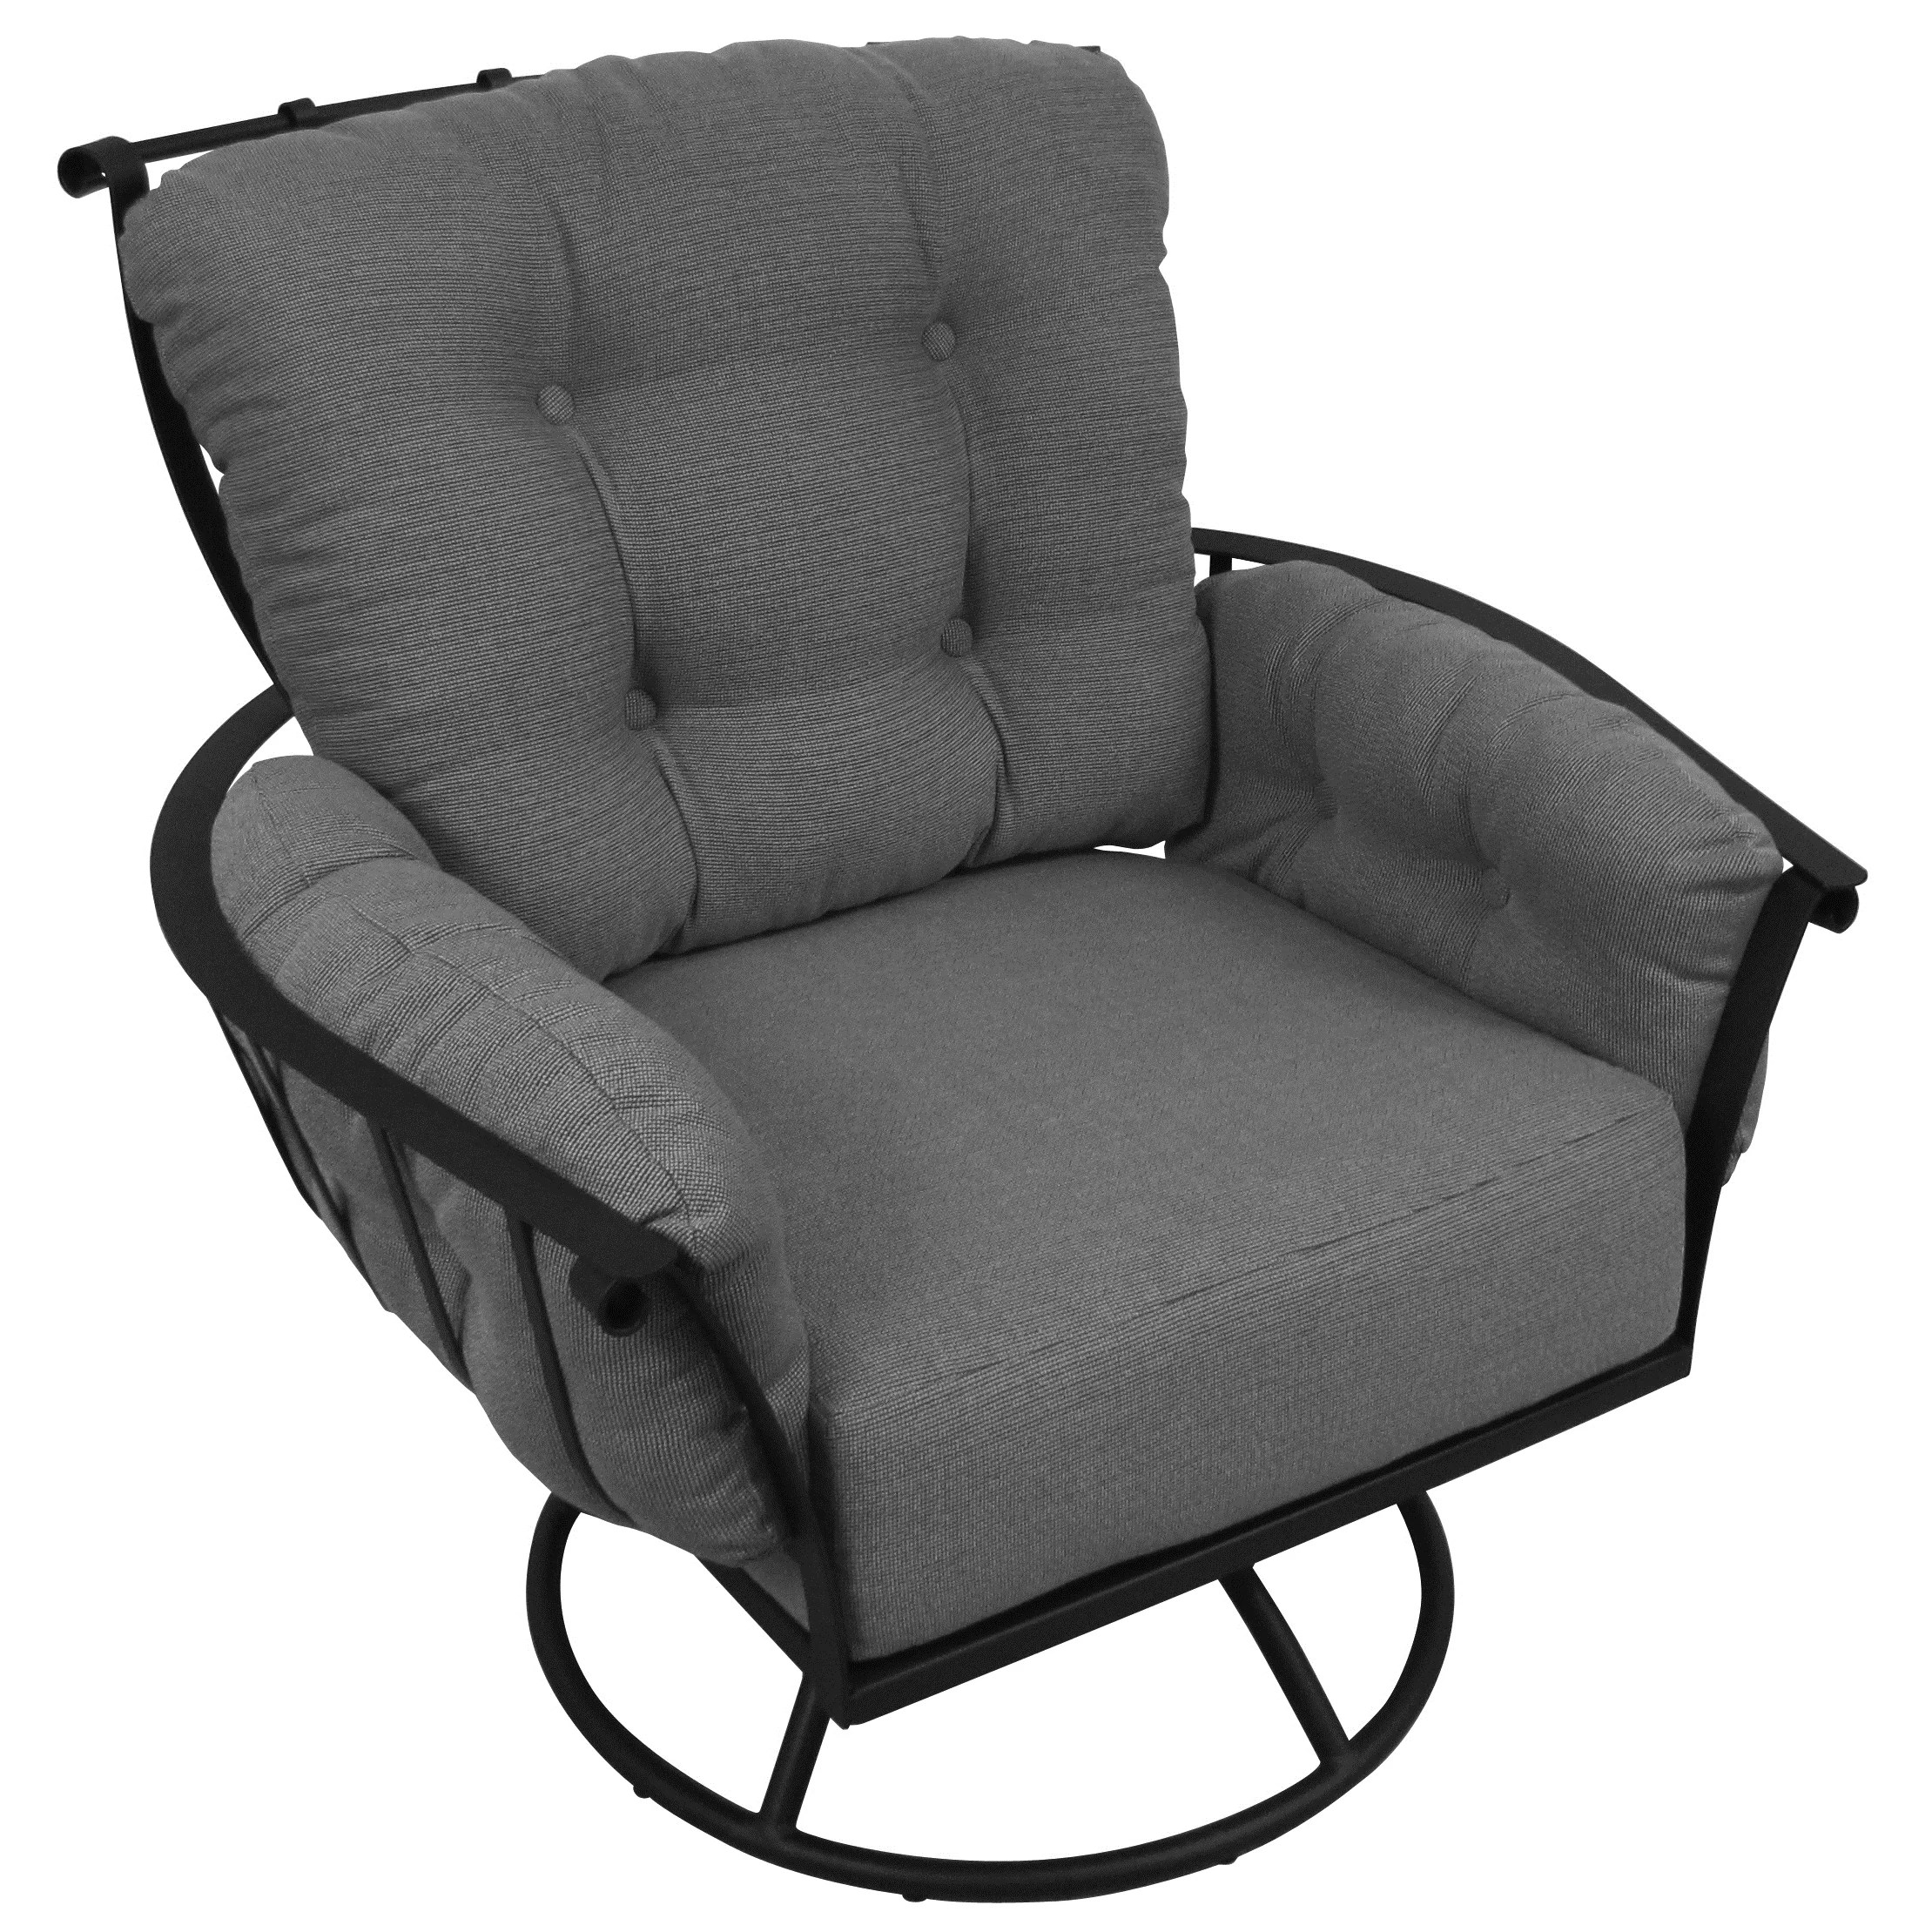 Rocking Swivel Chair Meadowcraft Swivel Rocking Chair With Cushions And Reviews